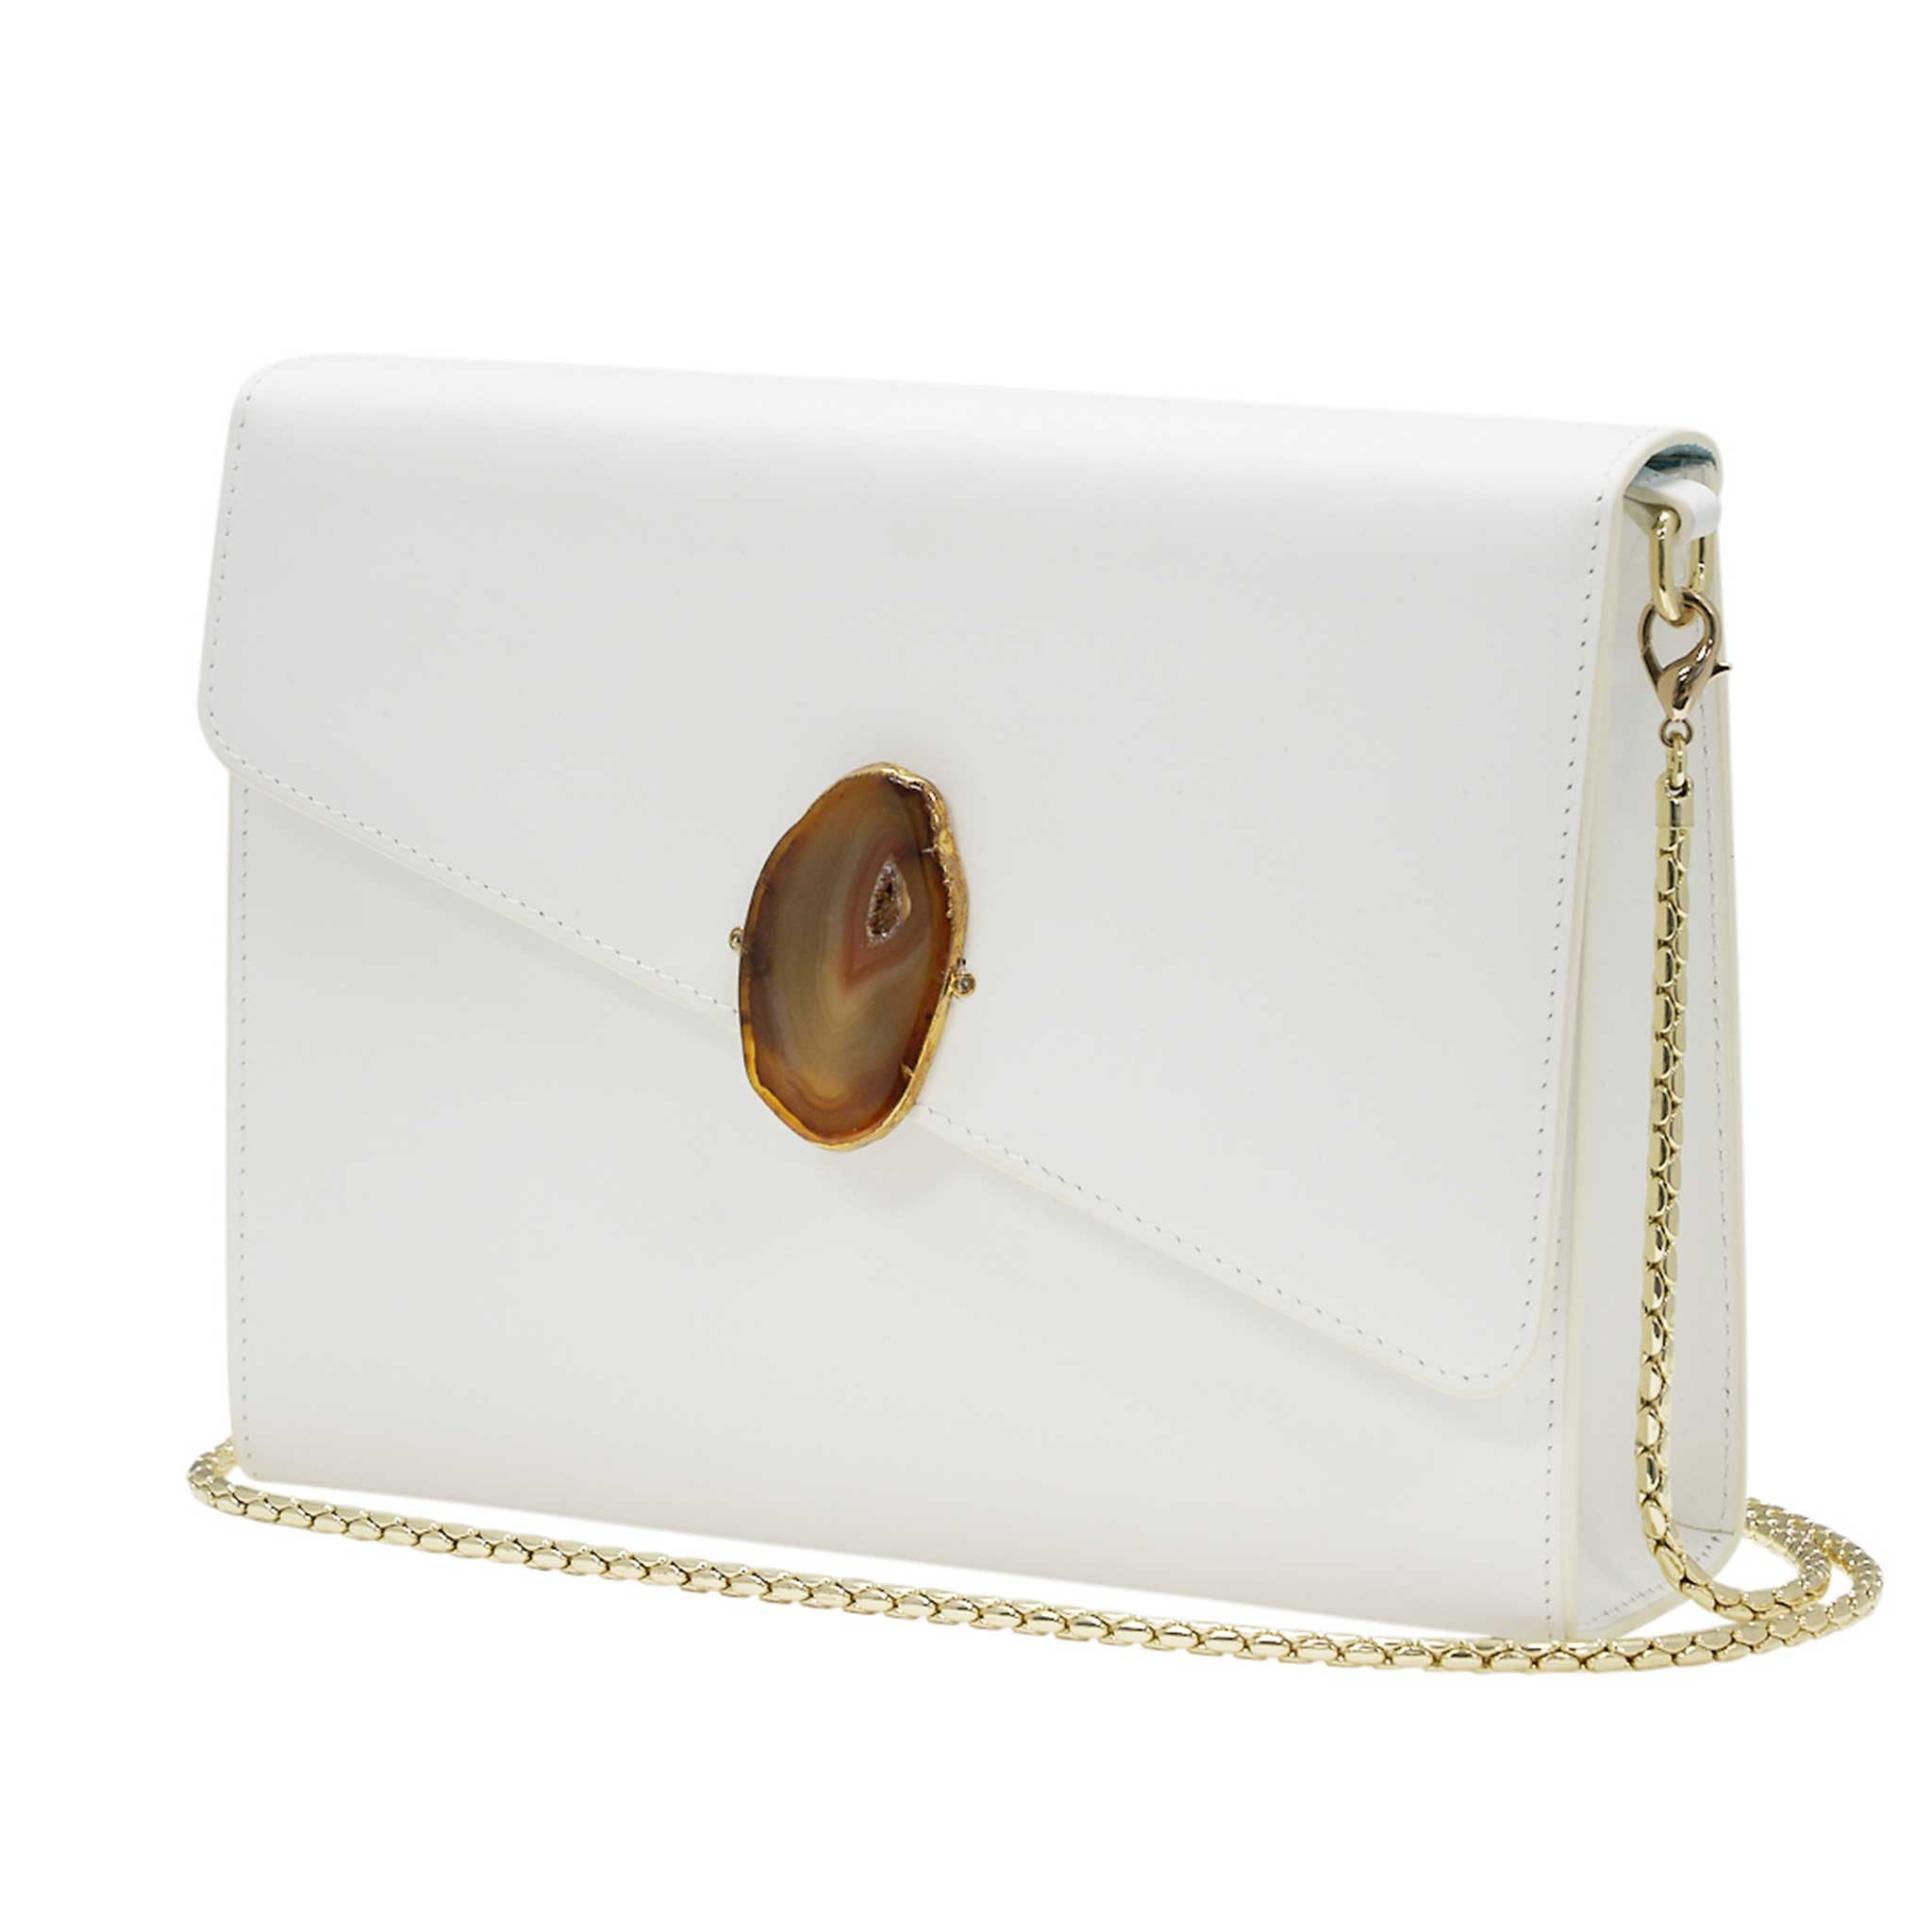 LOVED BAG - MOONSTONE WHITE LEATHER WITH BROWN AGATE - 1.03.001.01